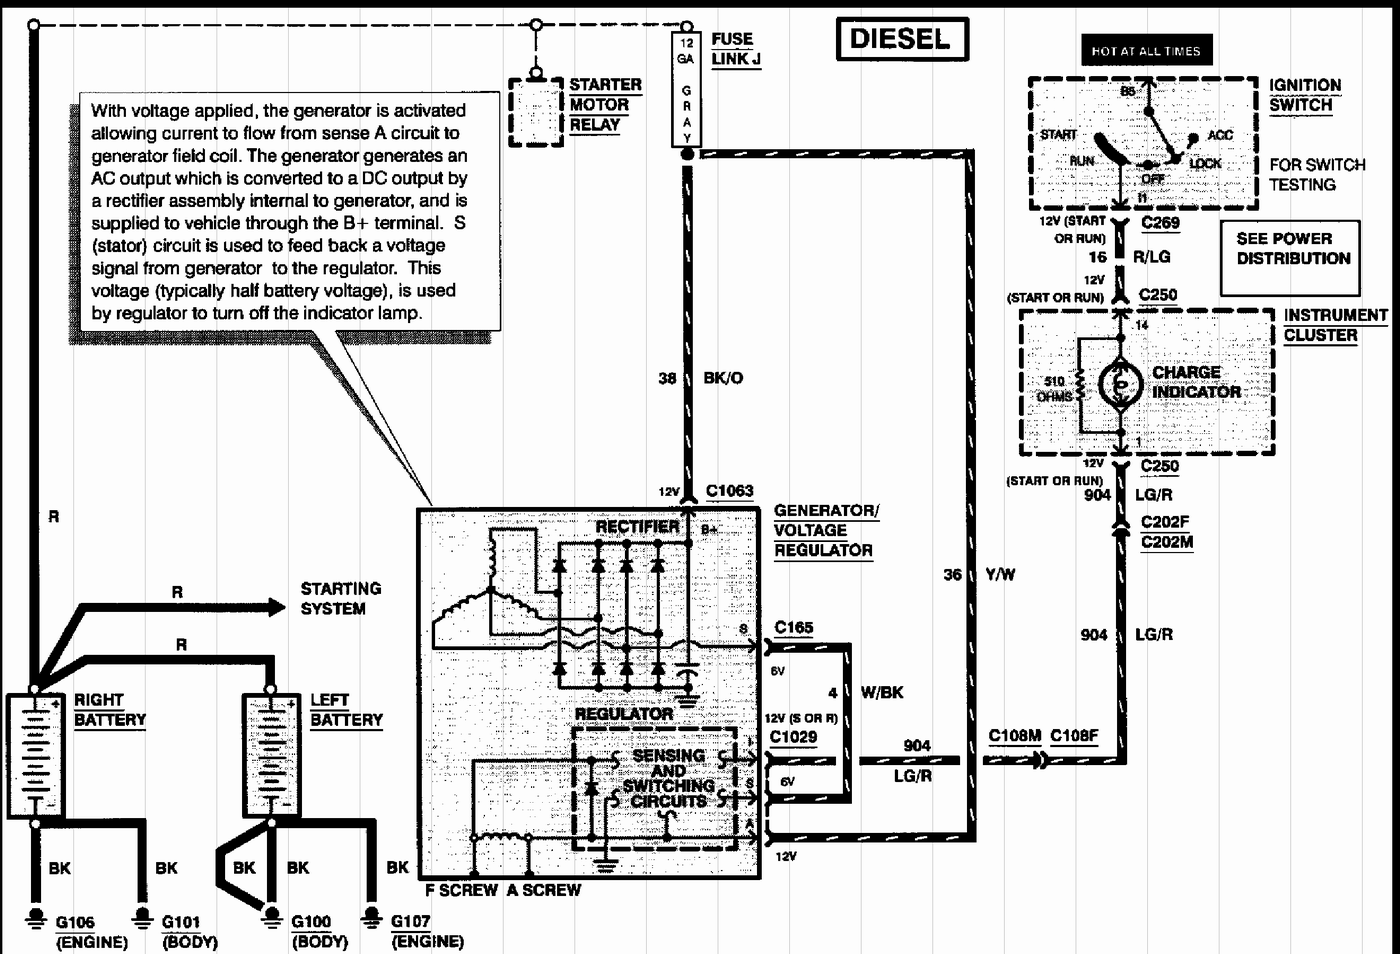 Ford F 250 Alternator Wiring Diagram | Wiring Diagram Ford F Alternator Wiring Diagram on ford f250 horn wiring diagram, ford f250 reverse lights wiring diagram, ford f250 trailer wiring diagram,